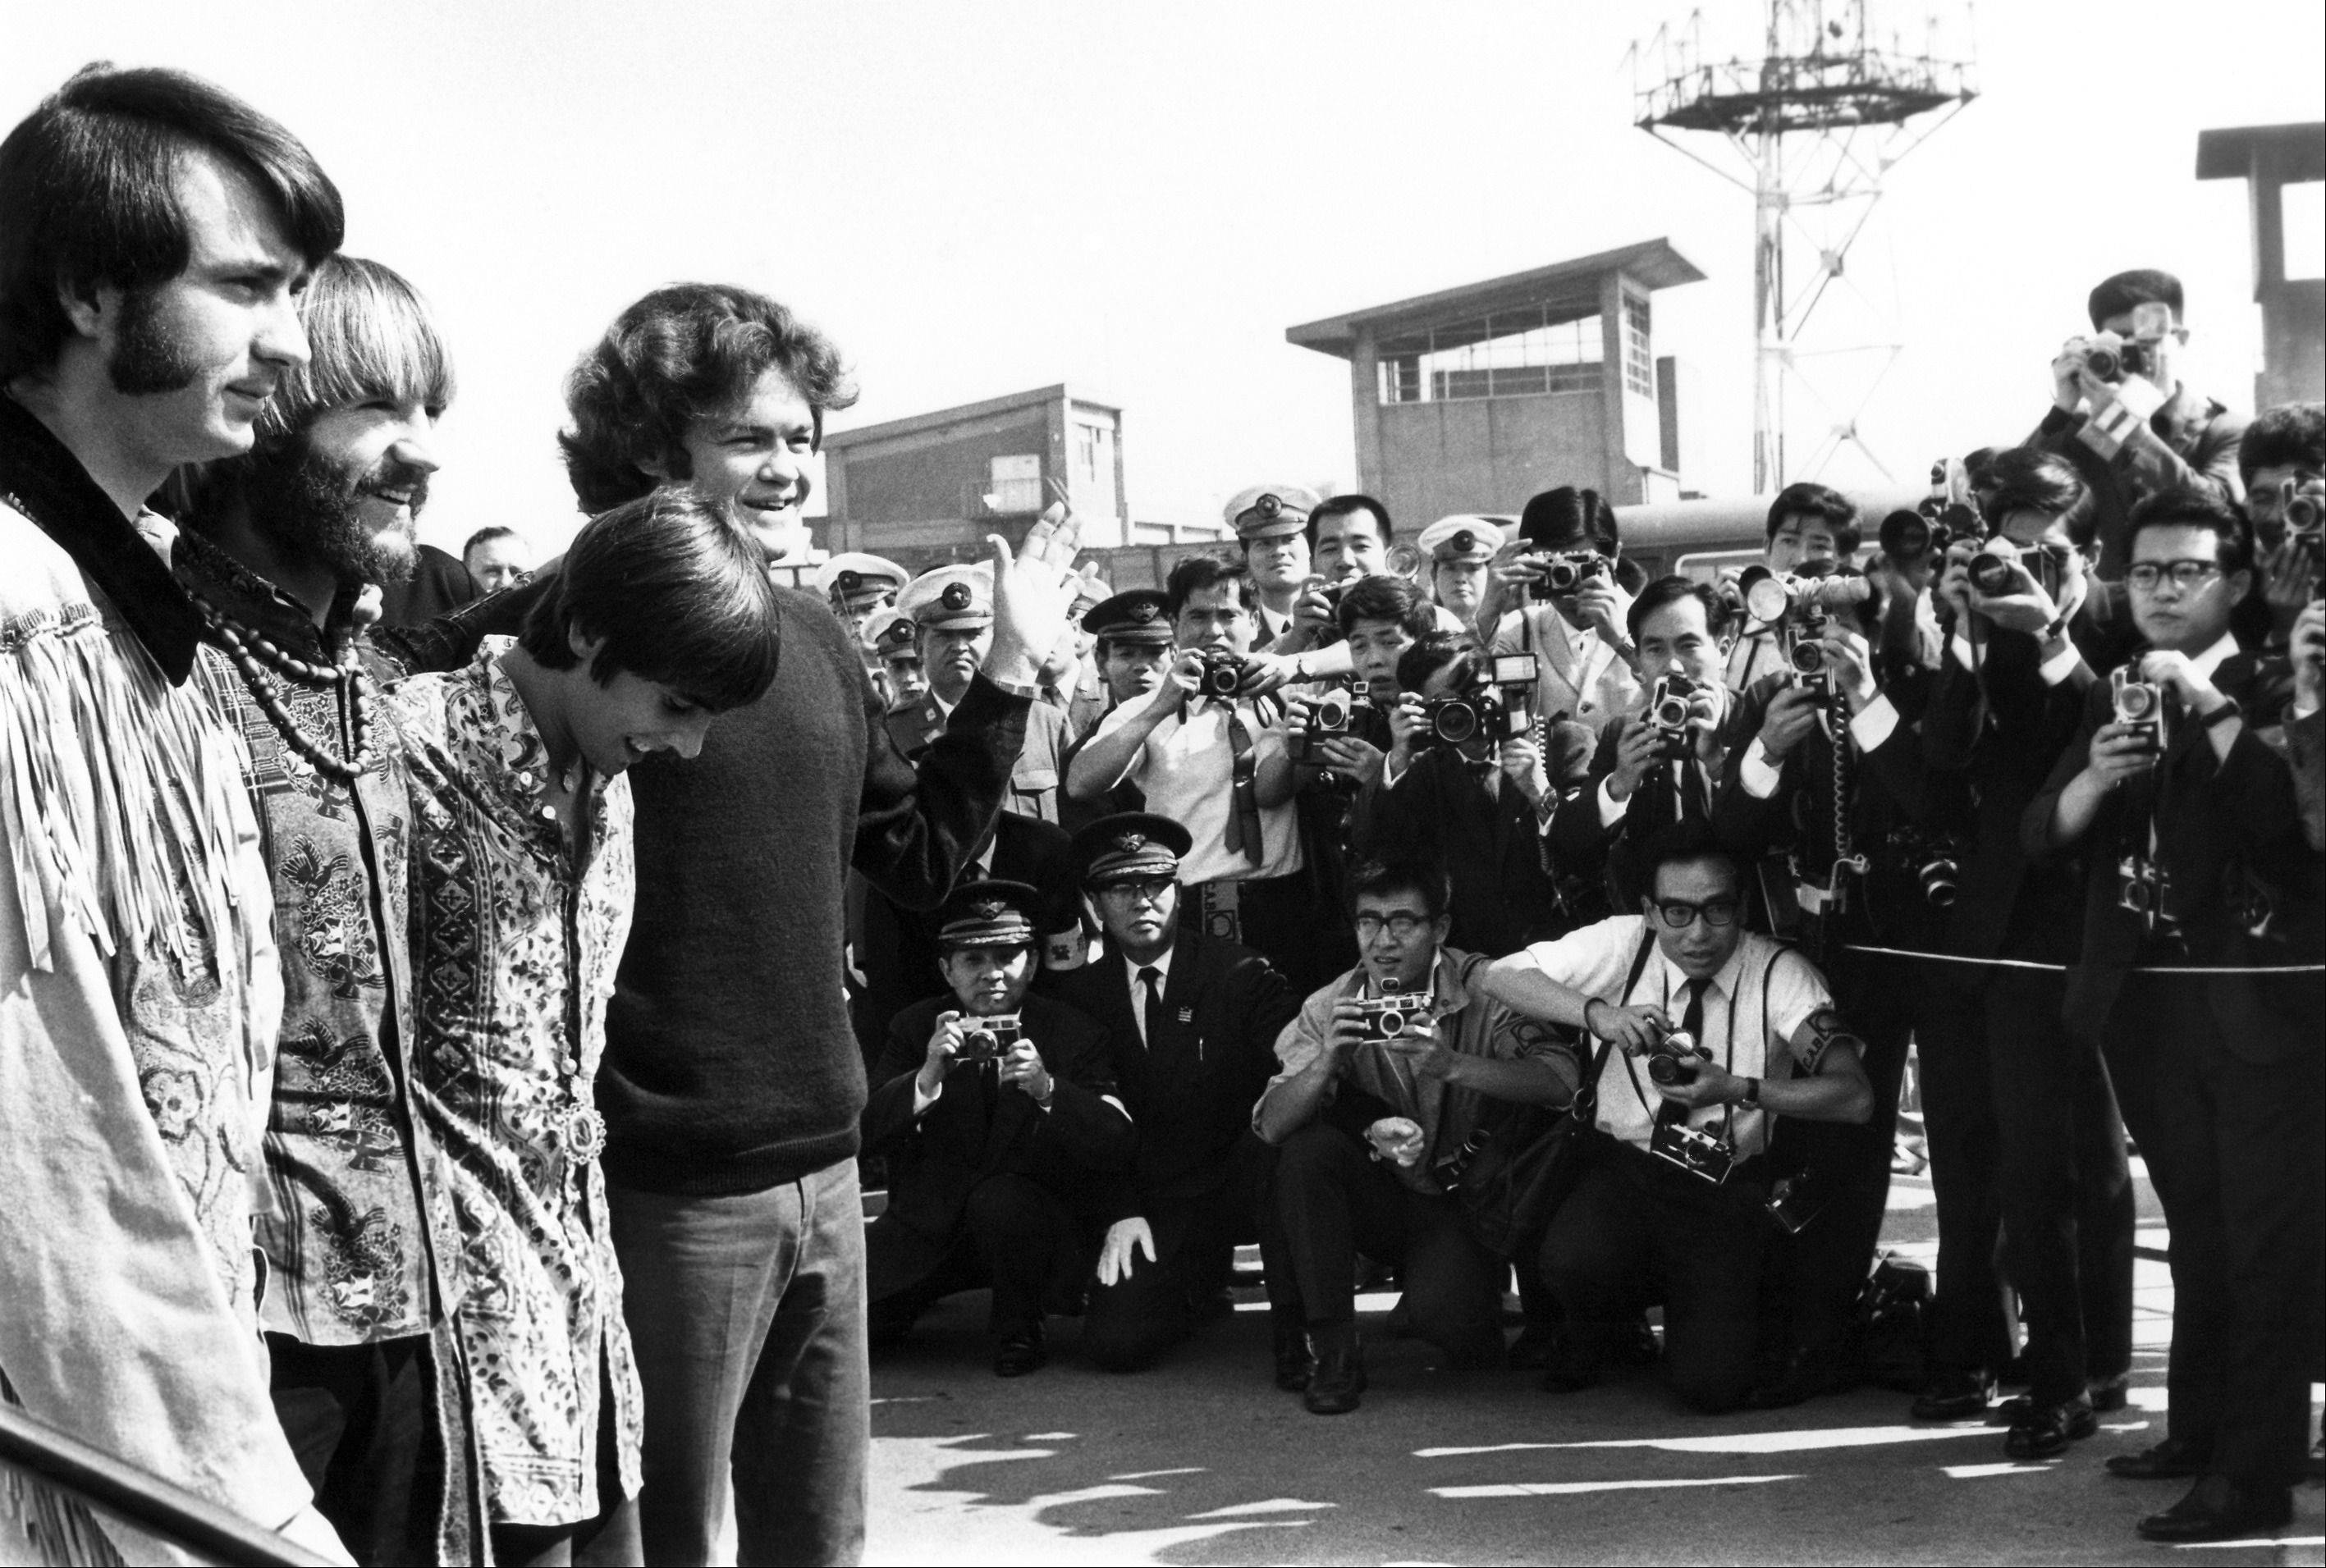 The pop musical group, The Monkees, arrived at Tokyo International Airport Sept. 30, 1968 for the performances in Tokyo, Kyoto and Osaka. About 1,000 Japanese fans, mostly teen aged girls gathered at the airport to see The Monkees. From right Micky Dolenz, Davy Jones, Peter Tork, Mike Nesmith. About 700 Japanese police surrounded the airport to protect Monkees from crowd but no mob scene.